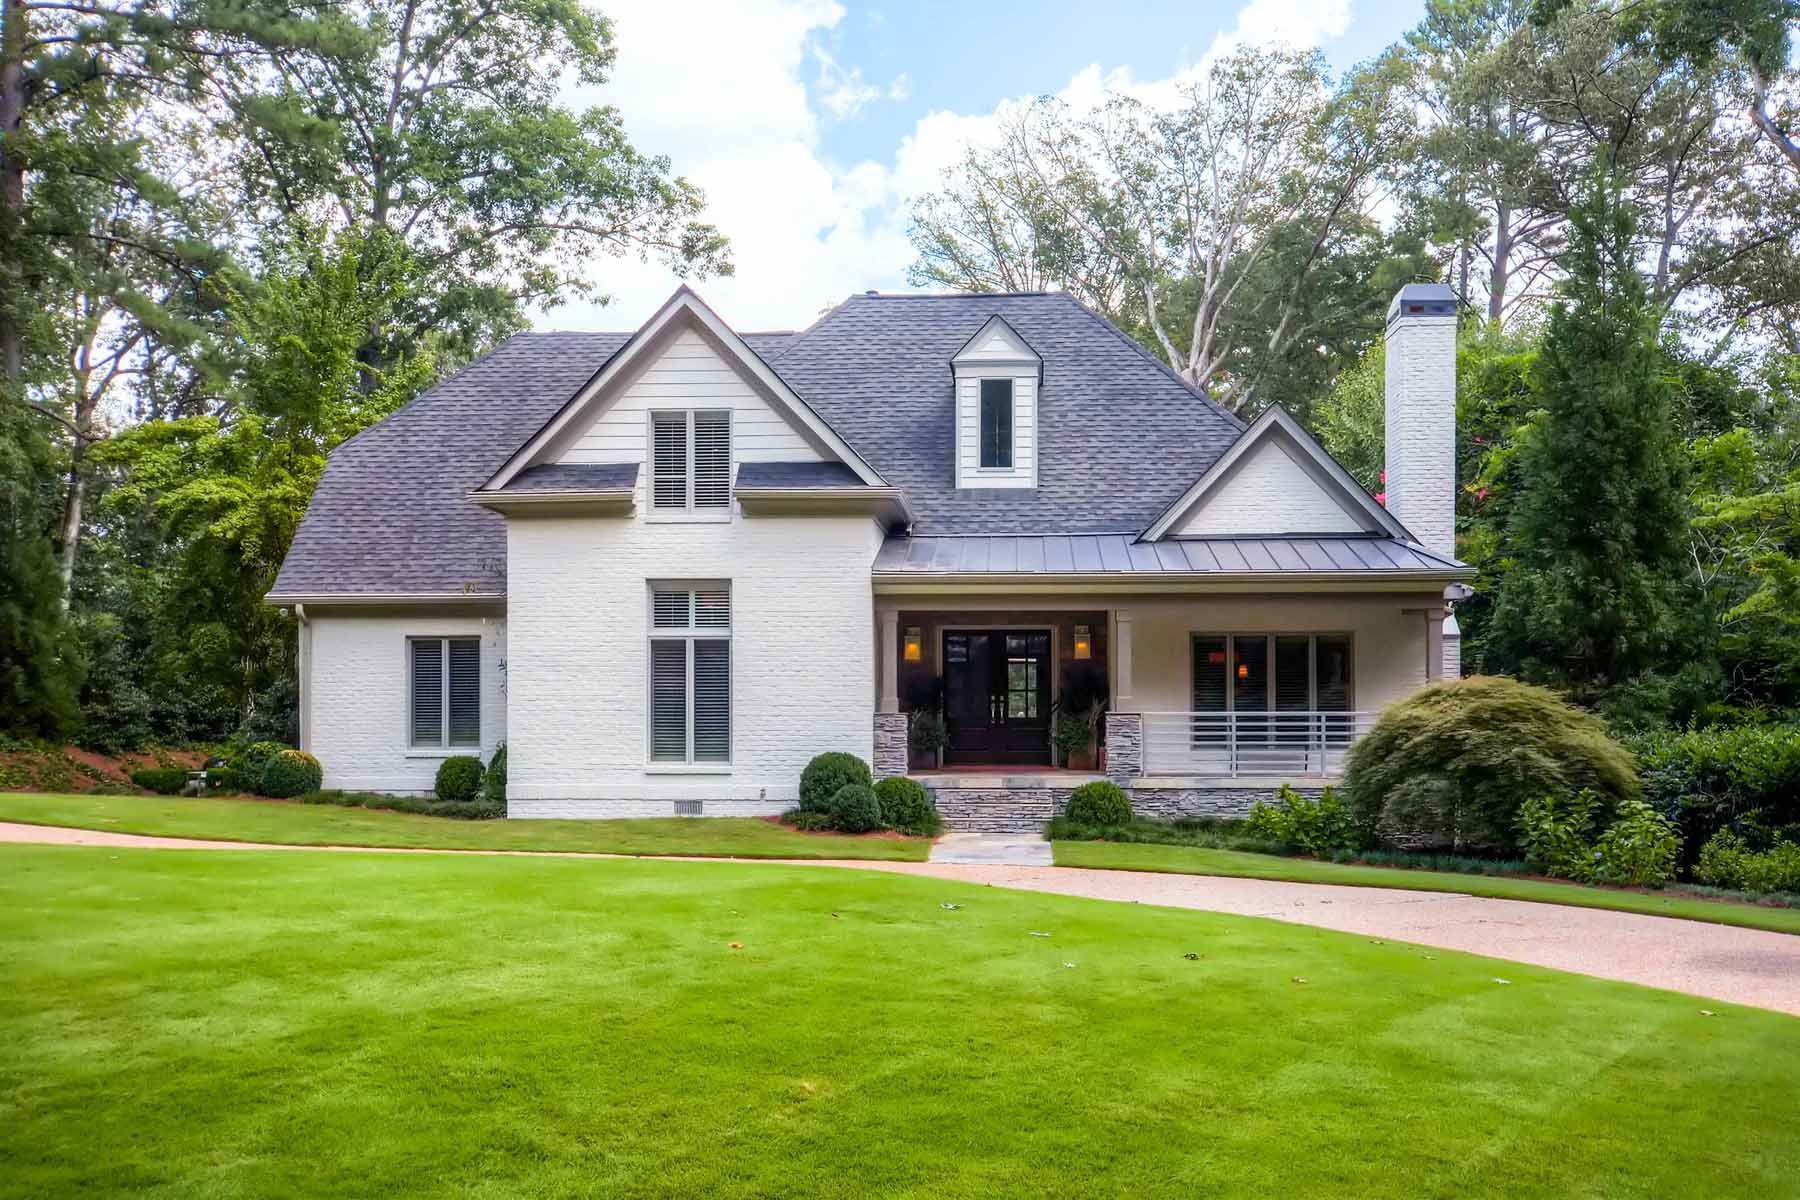 Single Family Home for Sale at Beautifully Renovated and Painted 4 Sides Brick Home 4243 Lakehaven Drive NE Brookhaven, Atlanta, Georgia, 30319 United States